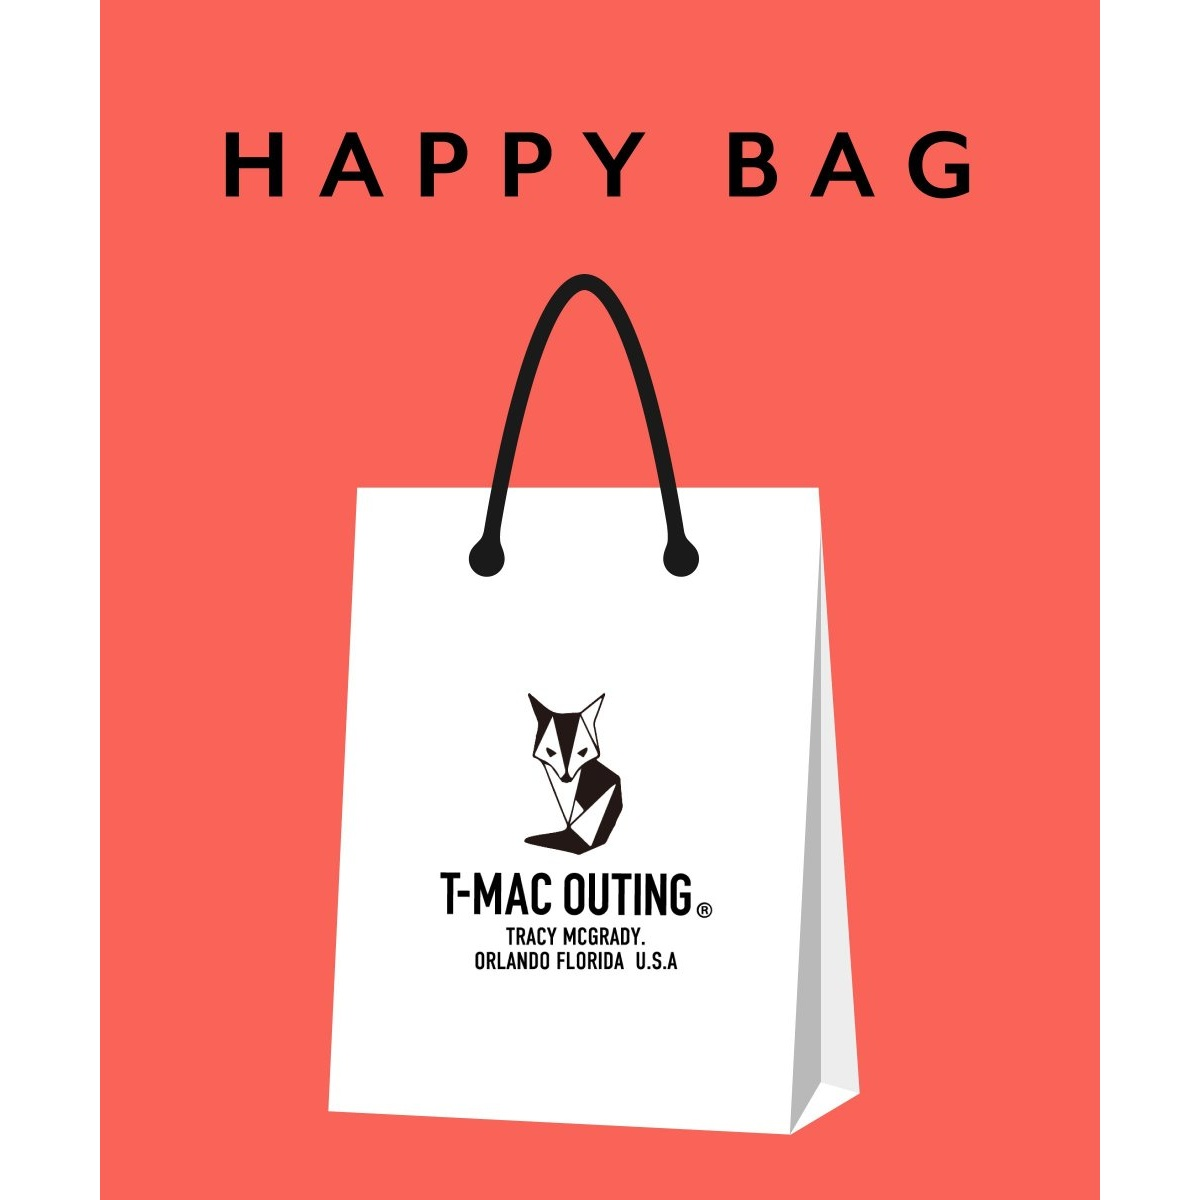 T-MAC OUTING HAPPY BAG/イッカ